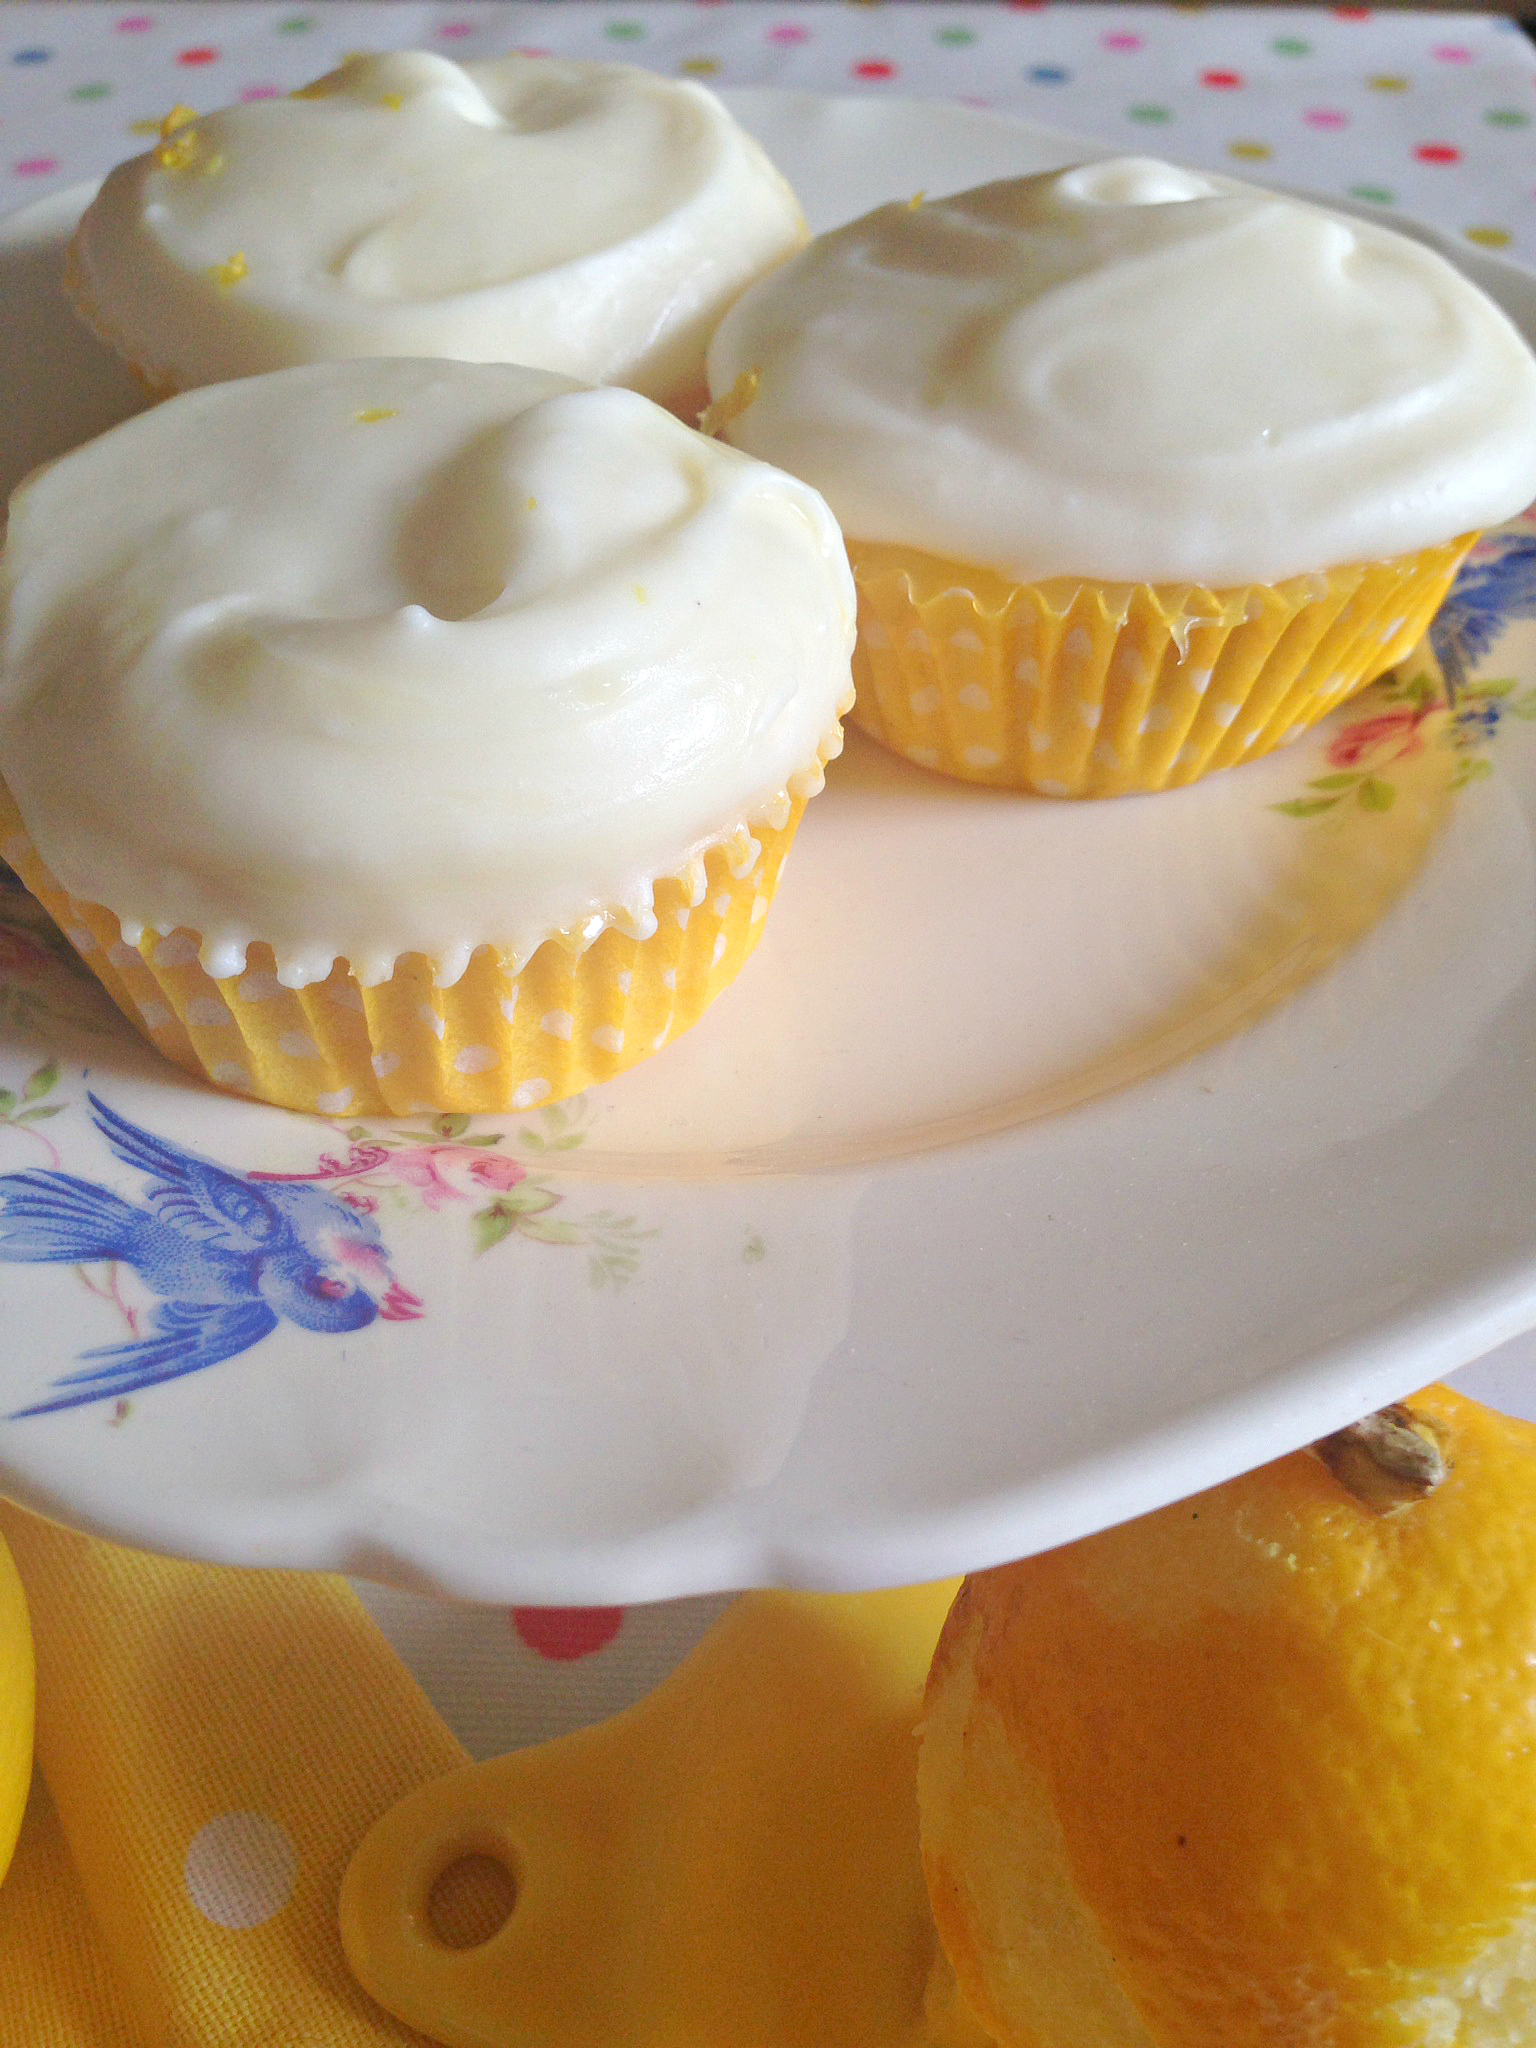 ... cheese frosting scented with lemon zest and juice slathered on top